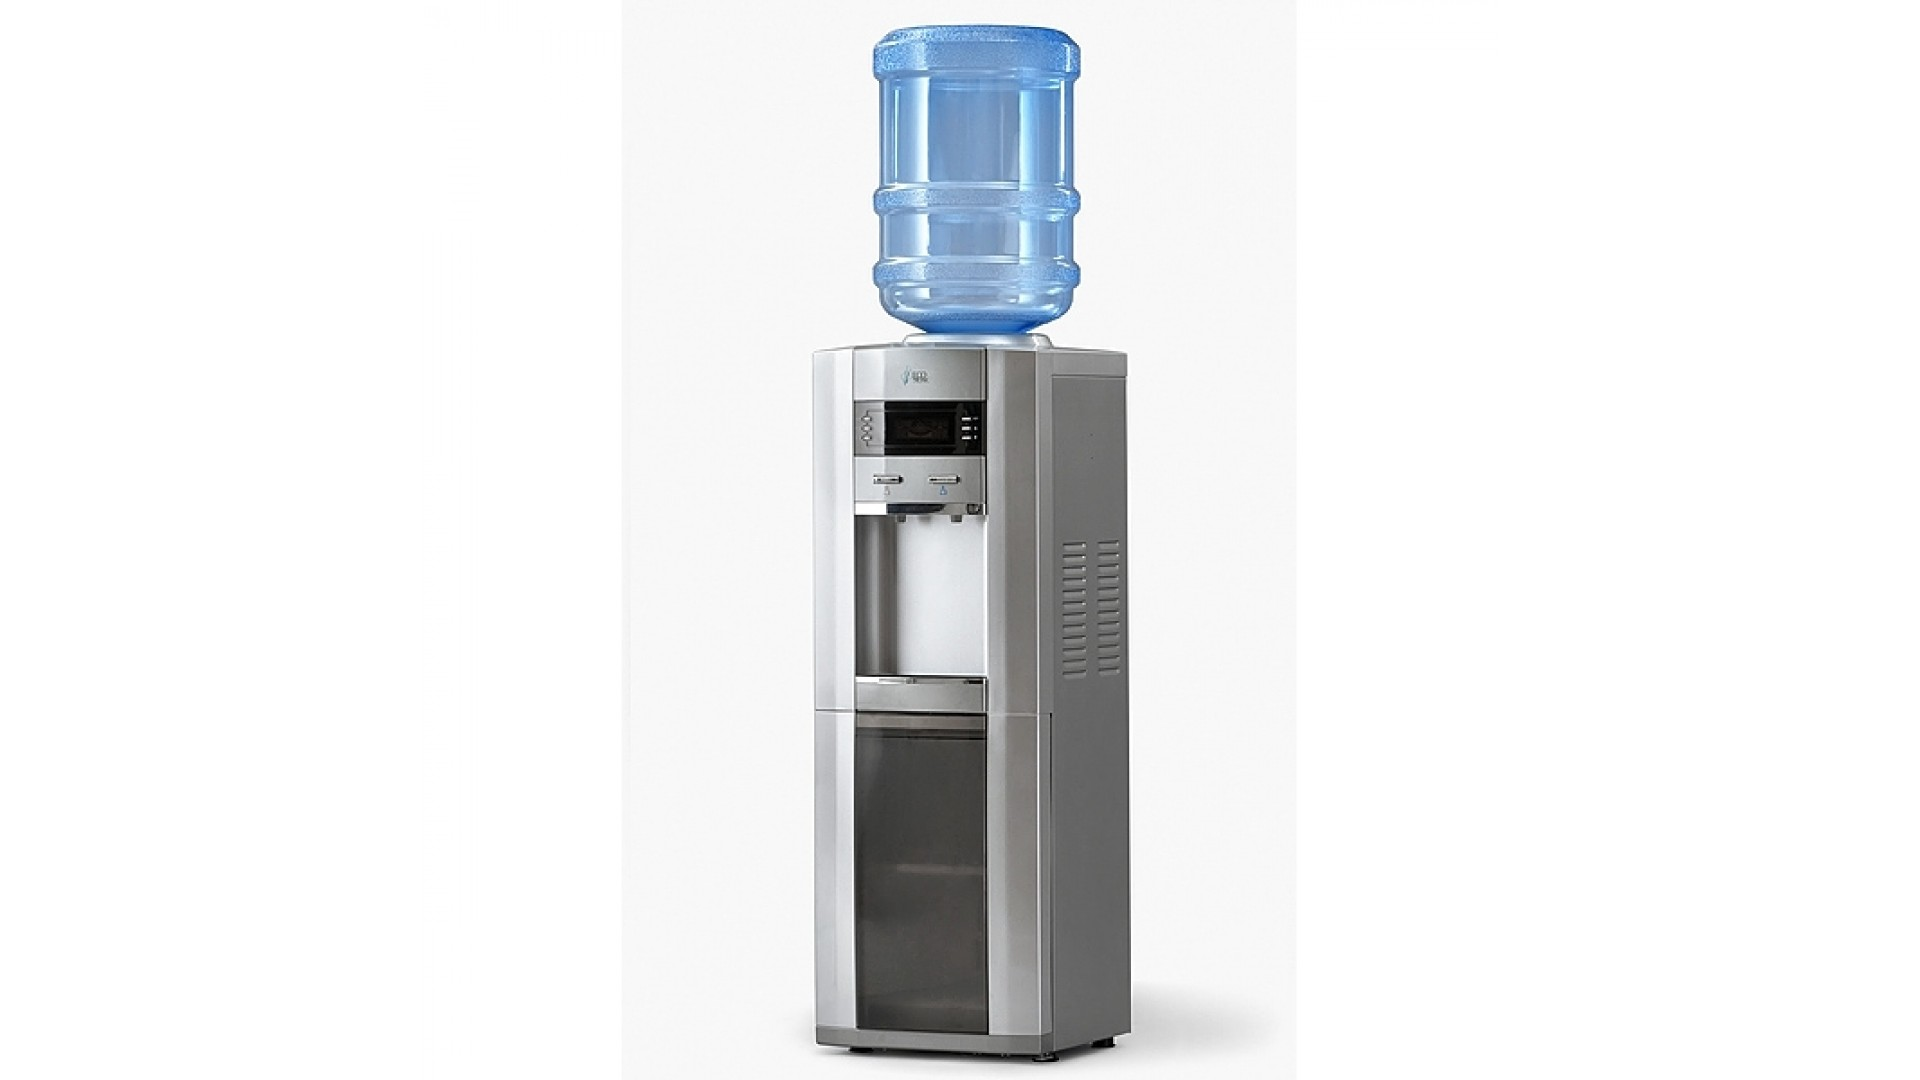 The water dispenser LC-AEL-100cd